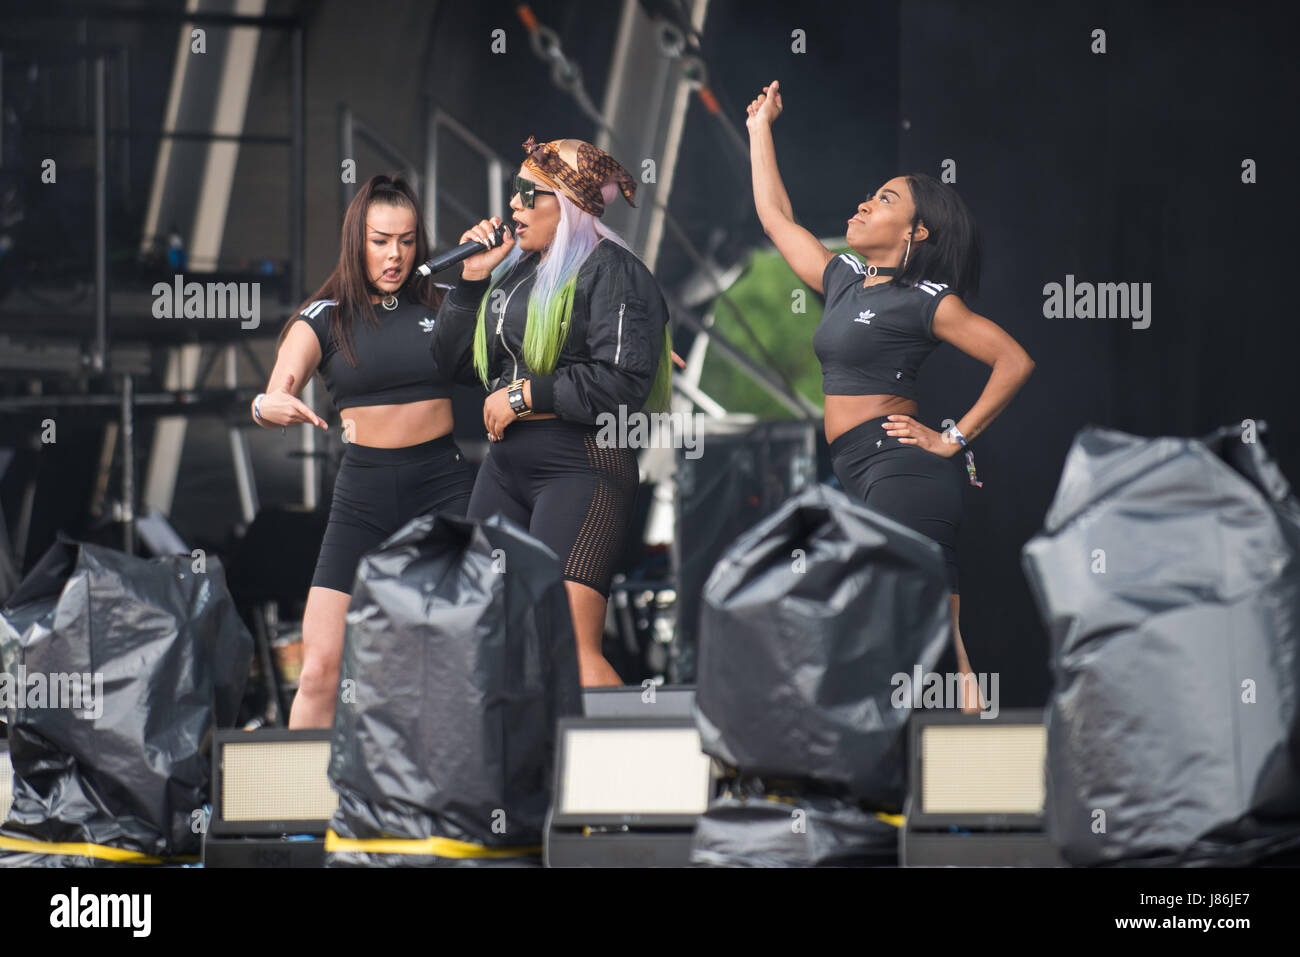 Southampton, Hampshire, UK. 27thth May, 2017. Stefflon Don performs on the main stage. Common People Music Festival returns in 2017 to Southampton Common where the Bestival team, along with curator, Rob Da Bank, have put together a fantastic lineup of acts. Event security remains tight after the recent terror attack in Manchester resulting in the UK terror threat level being escalated from 'Severe' to 'Critical'. Despite these anxieties, festival goers haven't been put off and are determined to enjoy the festivities, live music and sunshine. Credit: Will Bailey/Alamy Live News Stock Photo